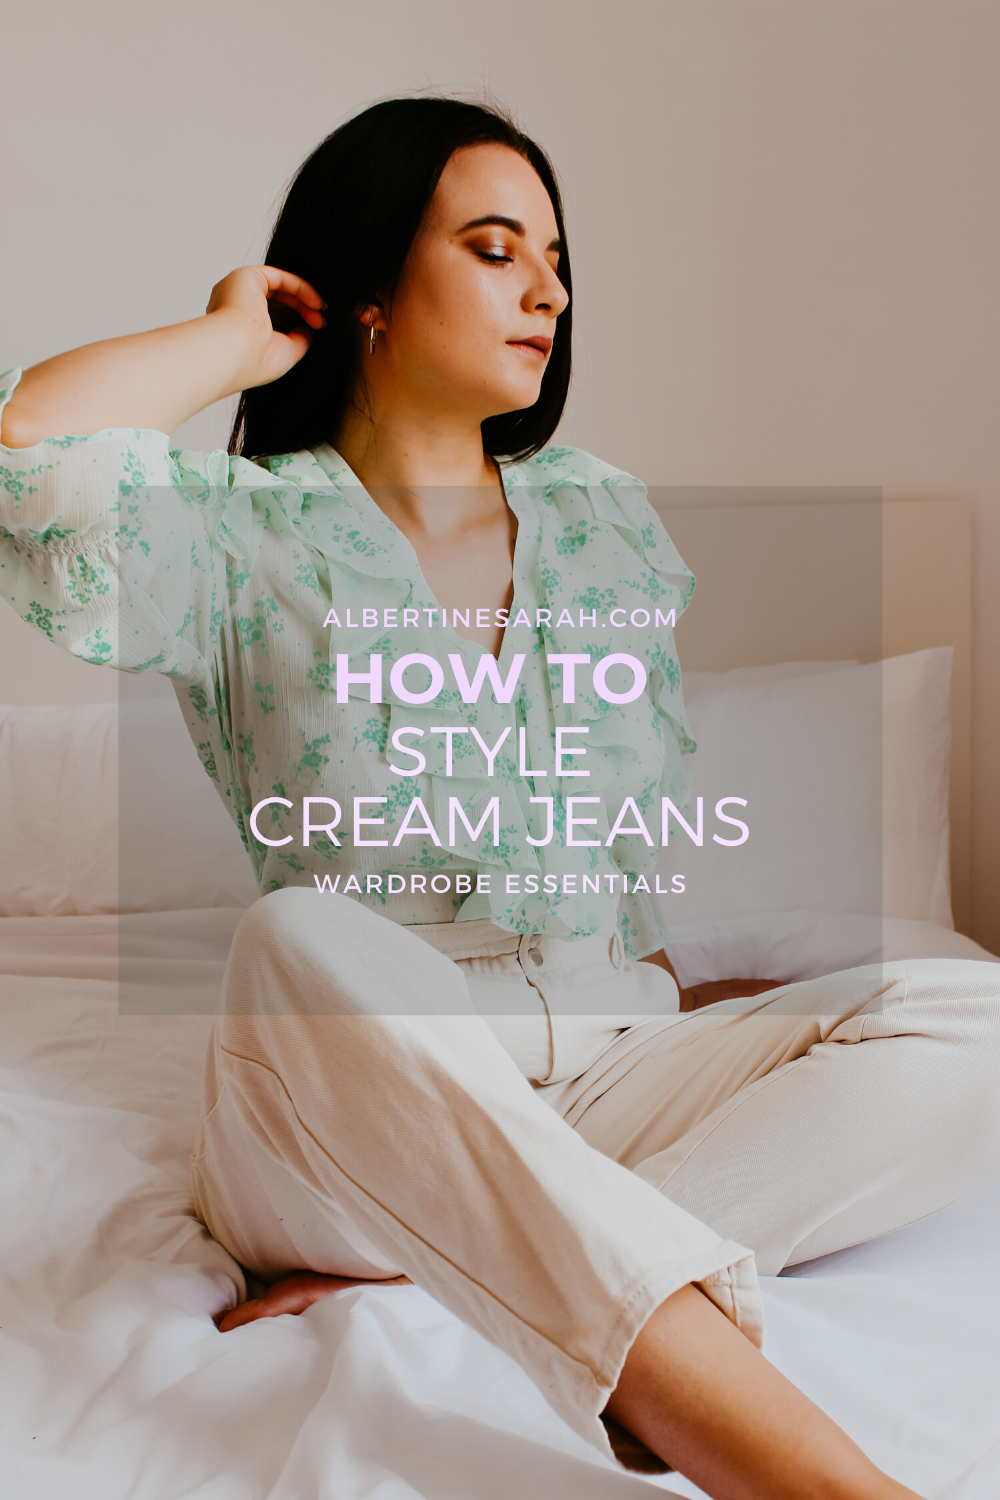 cream jeans Pinterest graphic